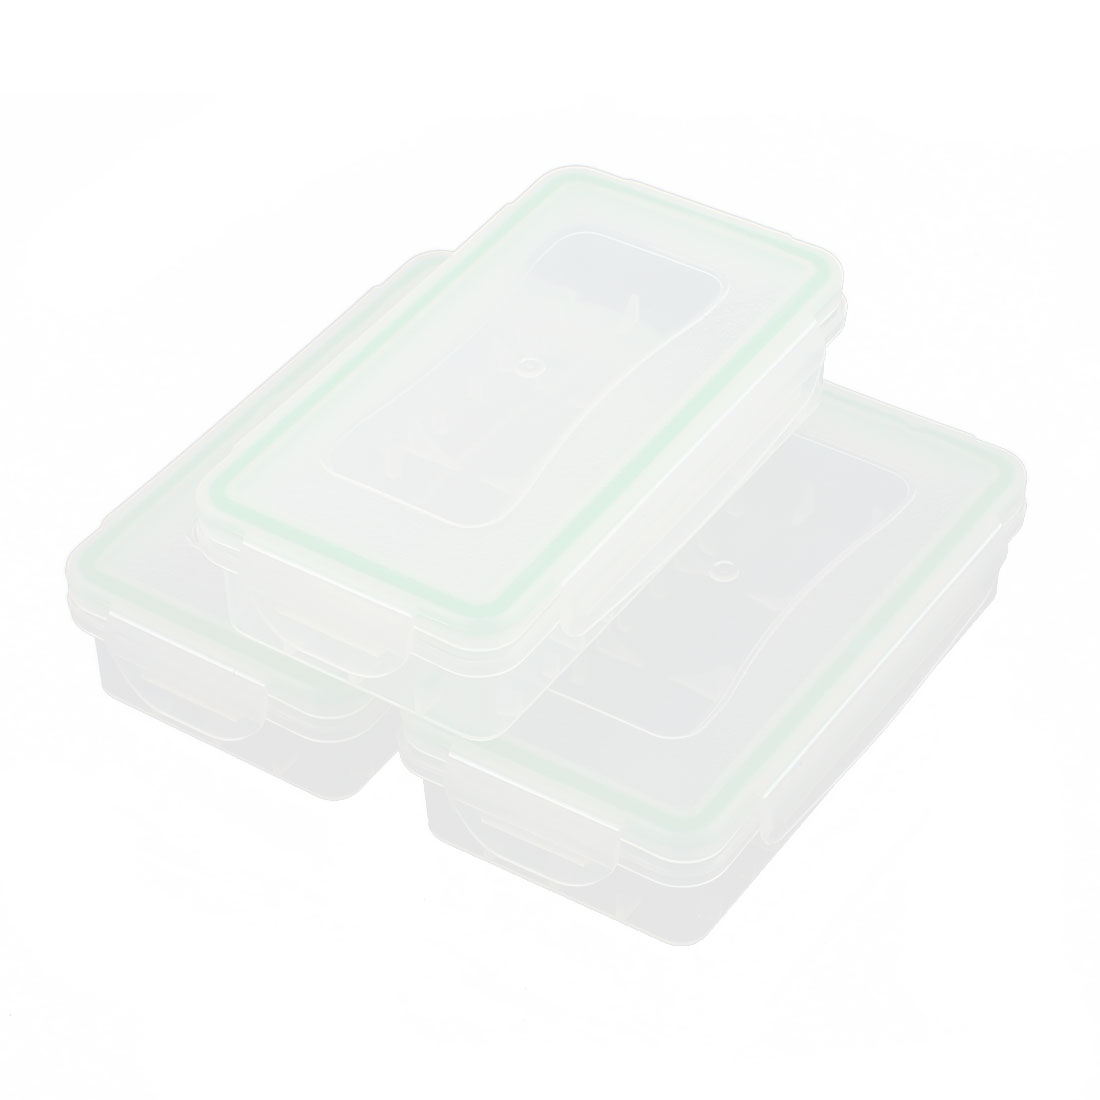 Plastic Rectangle Waterproof Battery Protective Case Storage Box Clear Green 3Pcs